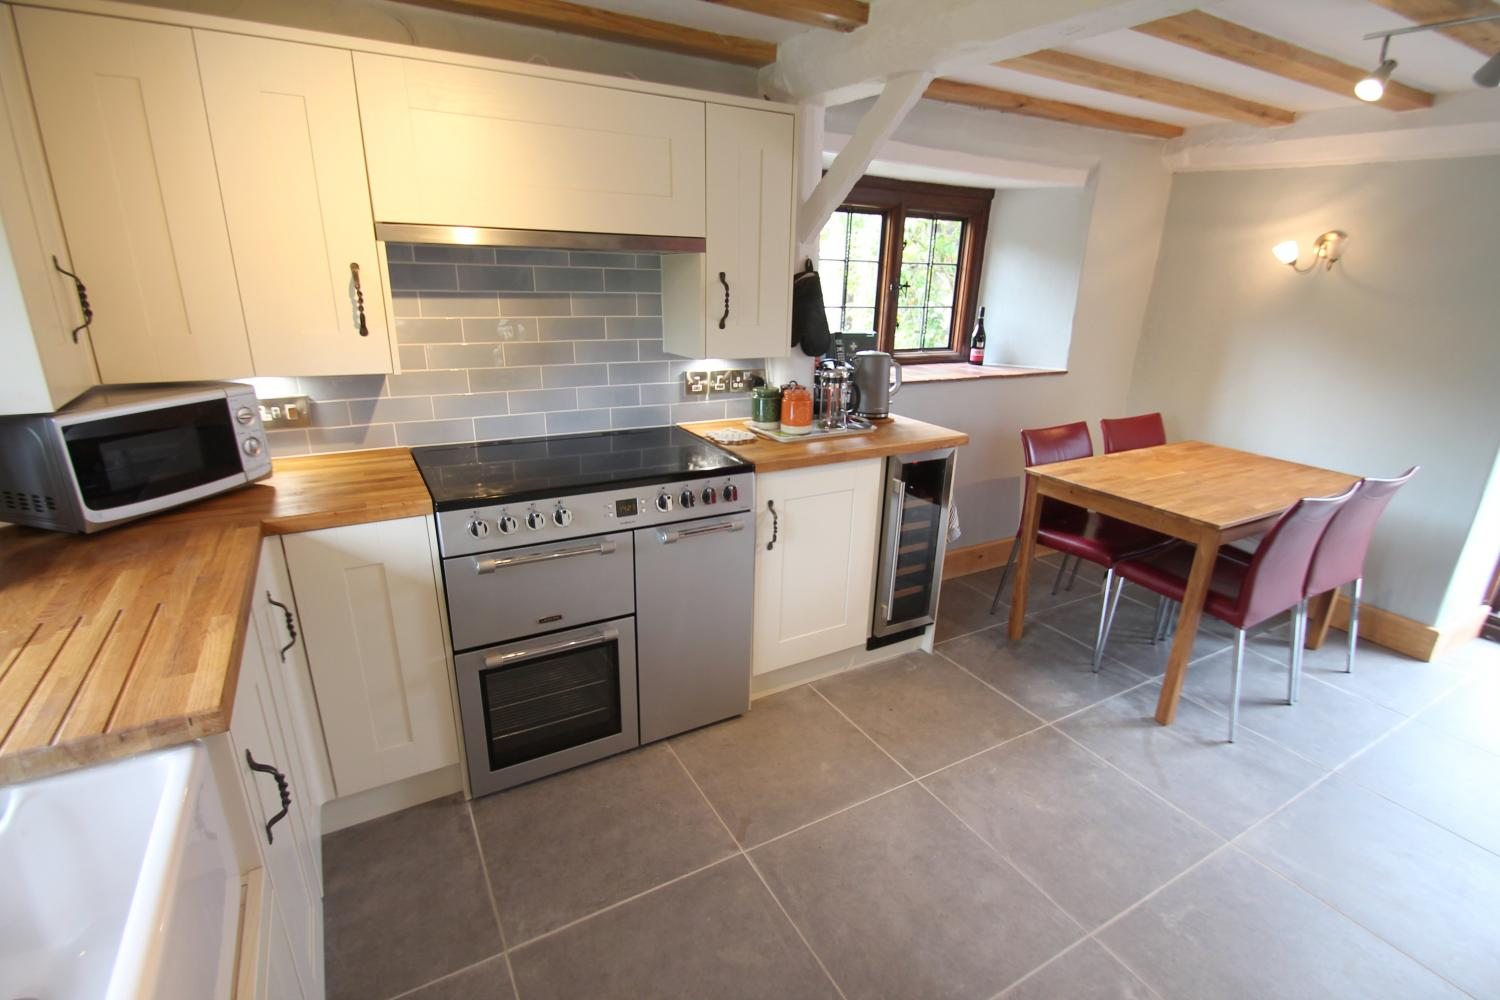 Winder Cottage kitchen and dining room